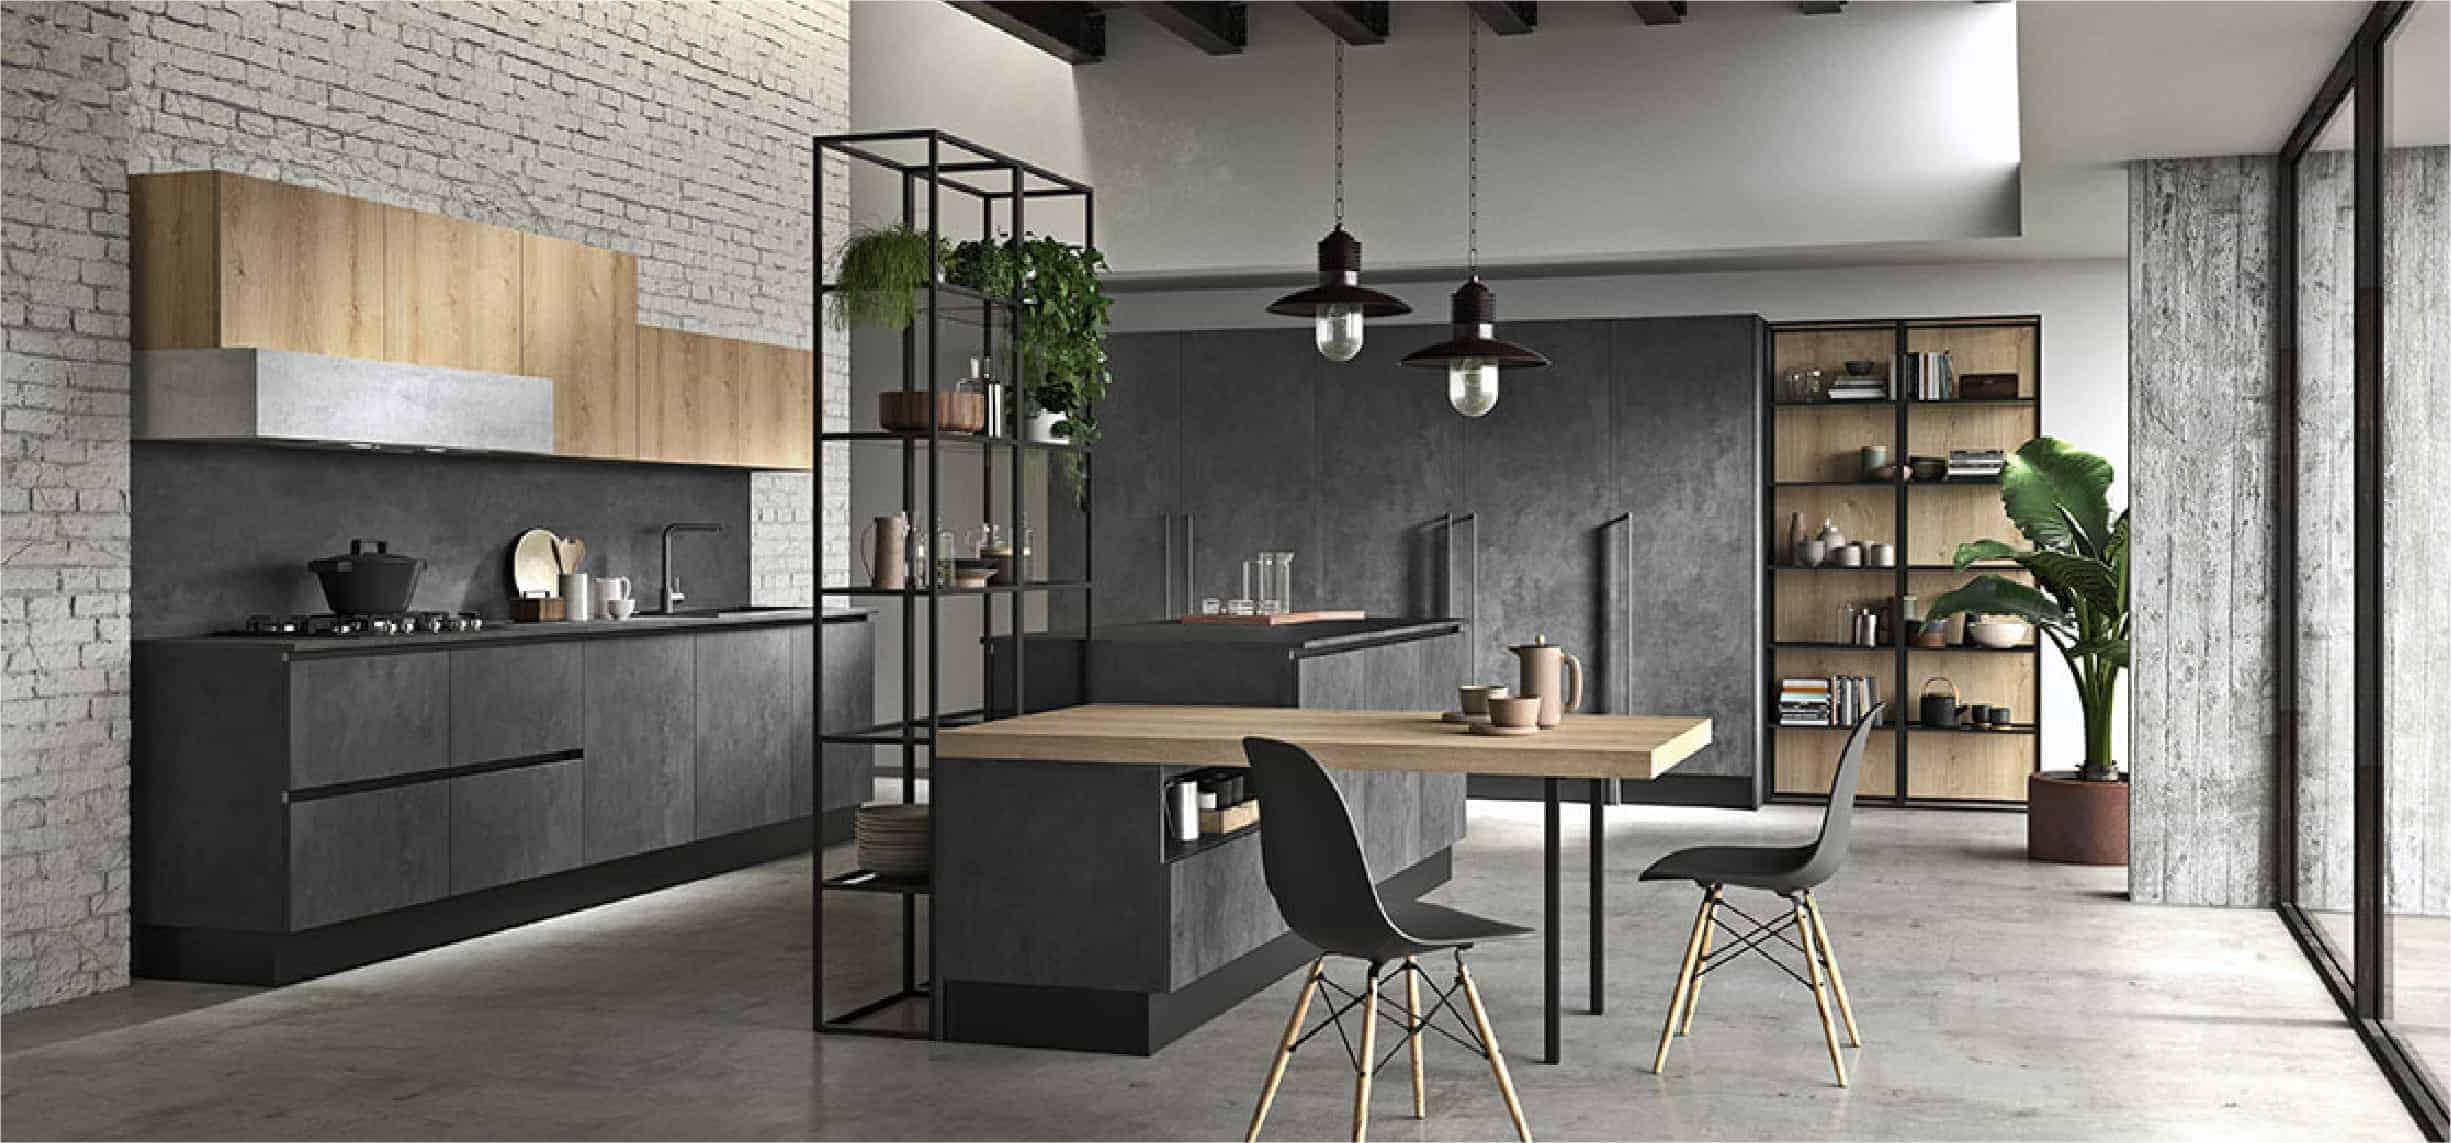 gray jerusalem kitchen design